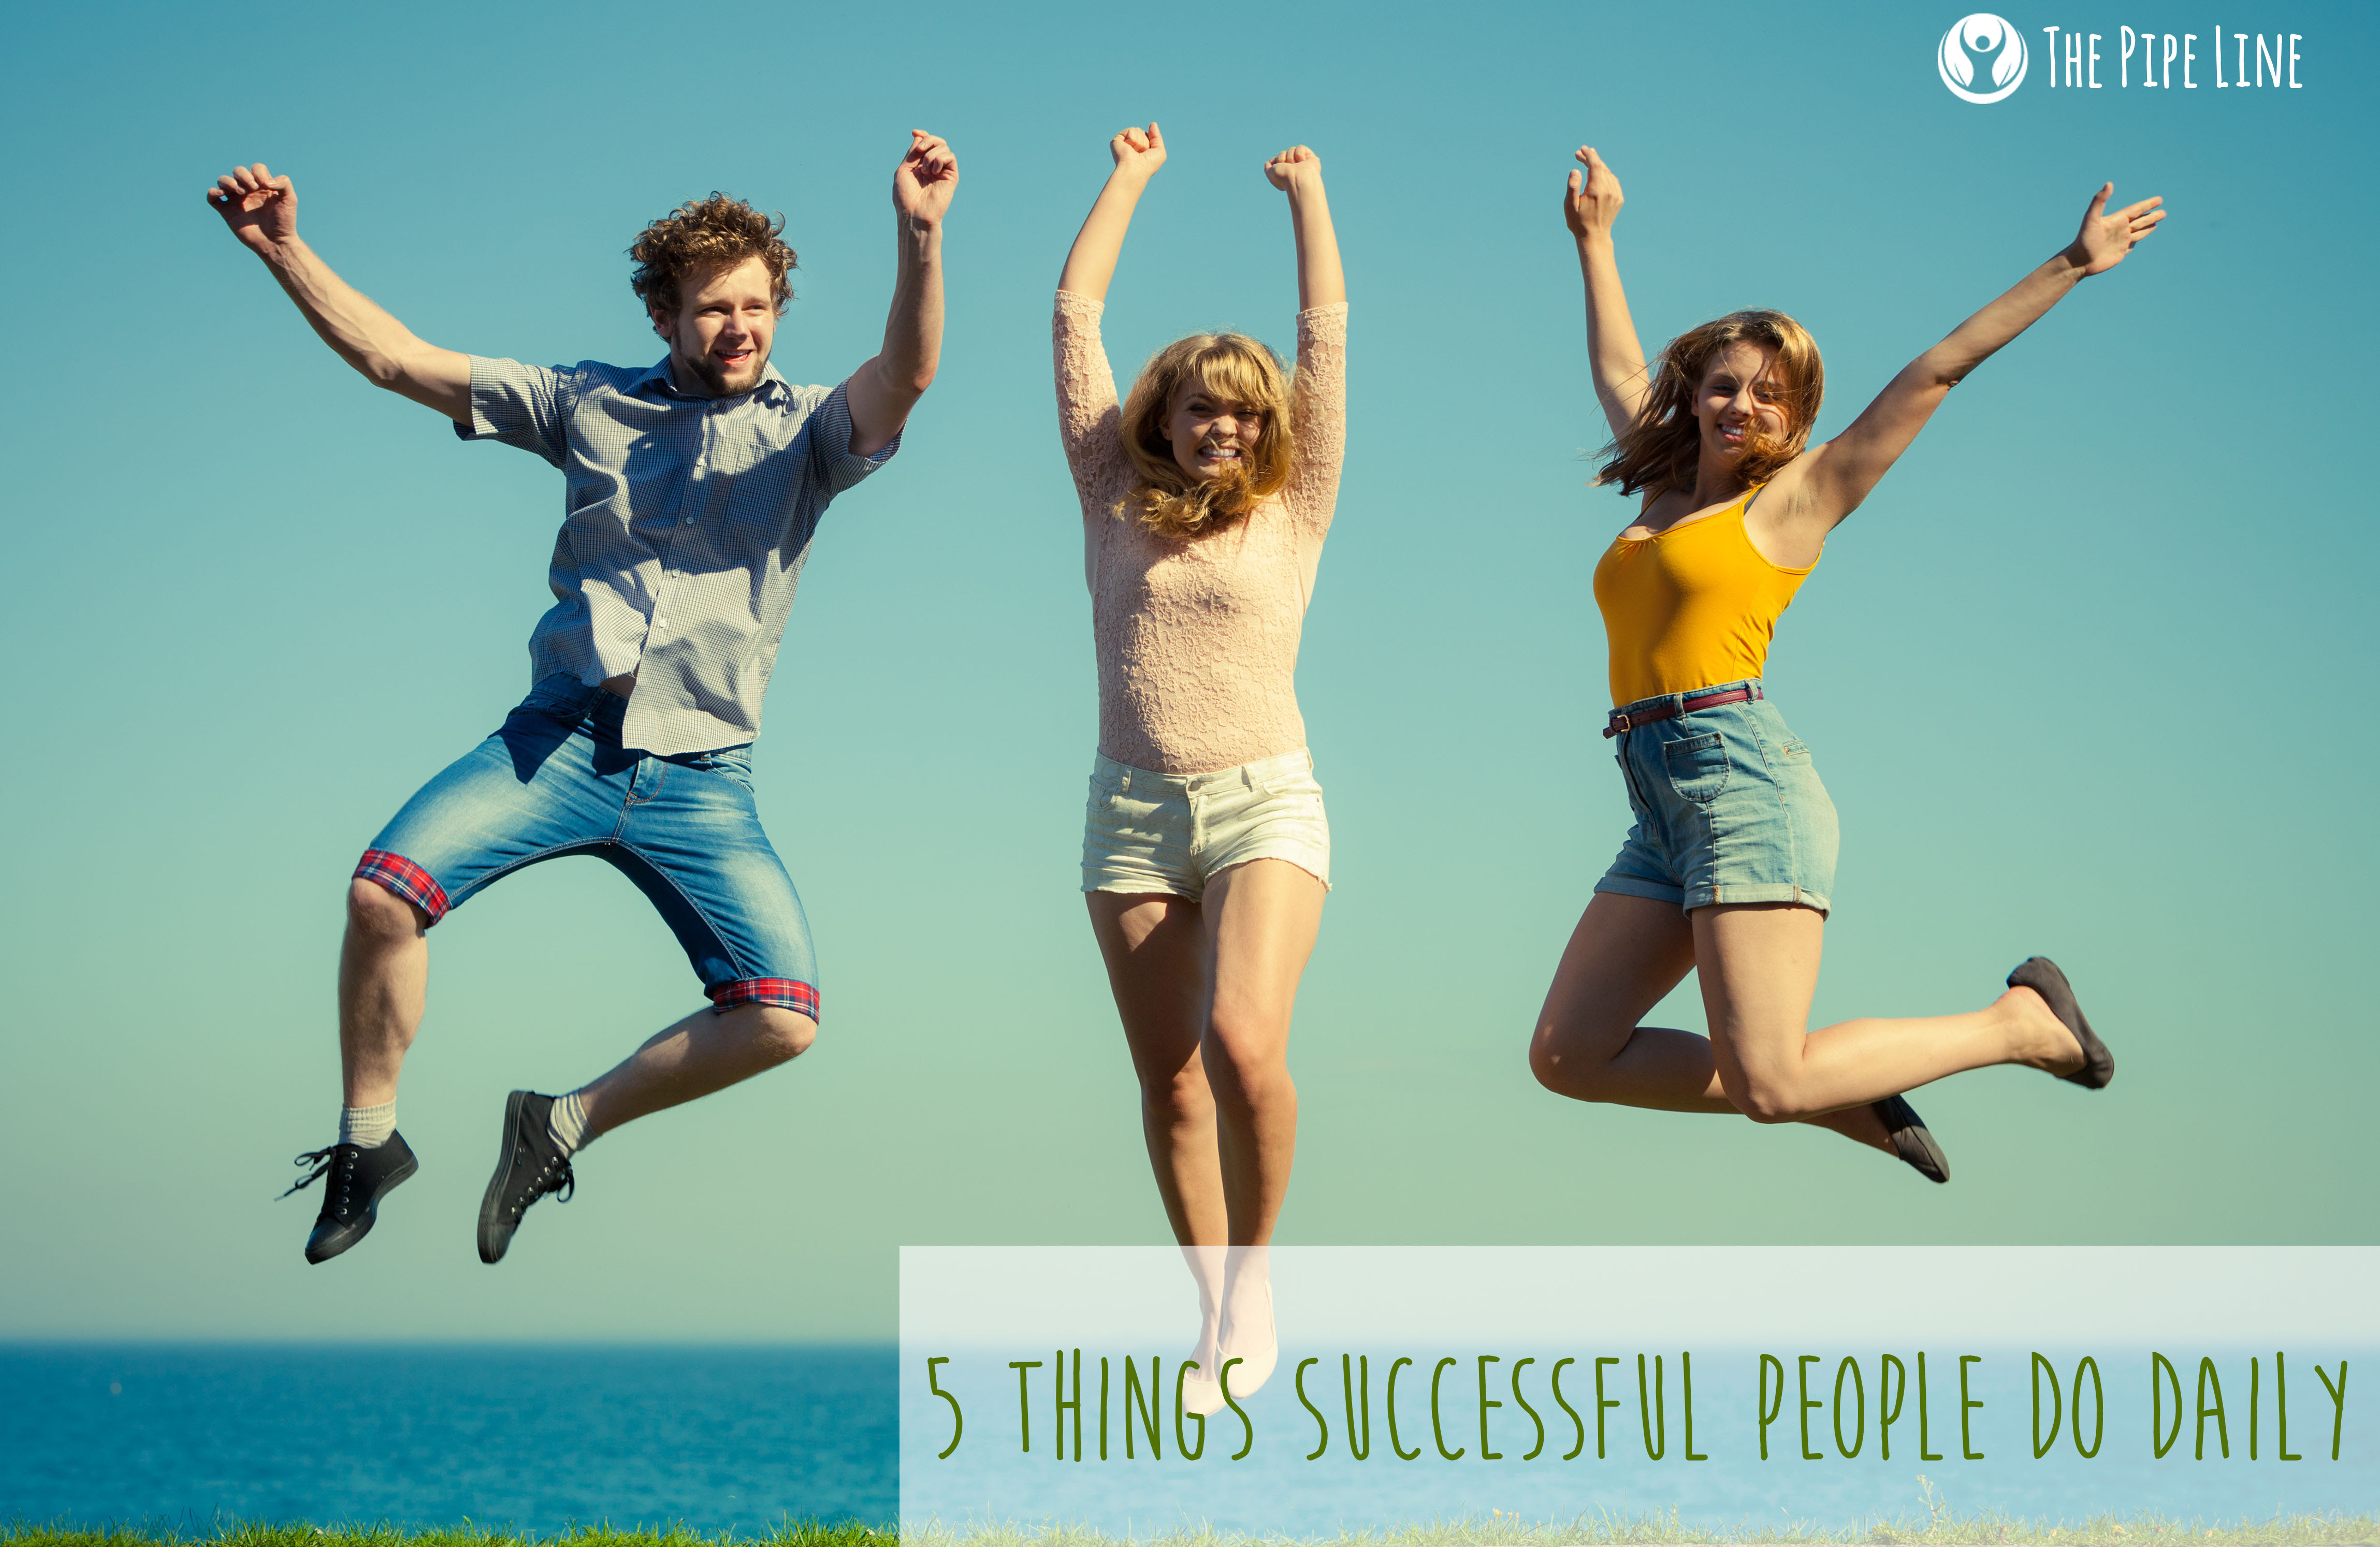 5 Things Successful People Do Daily